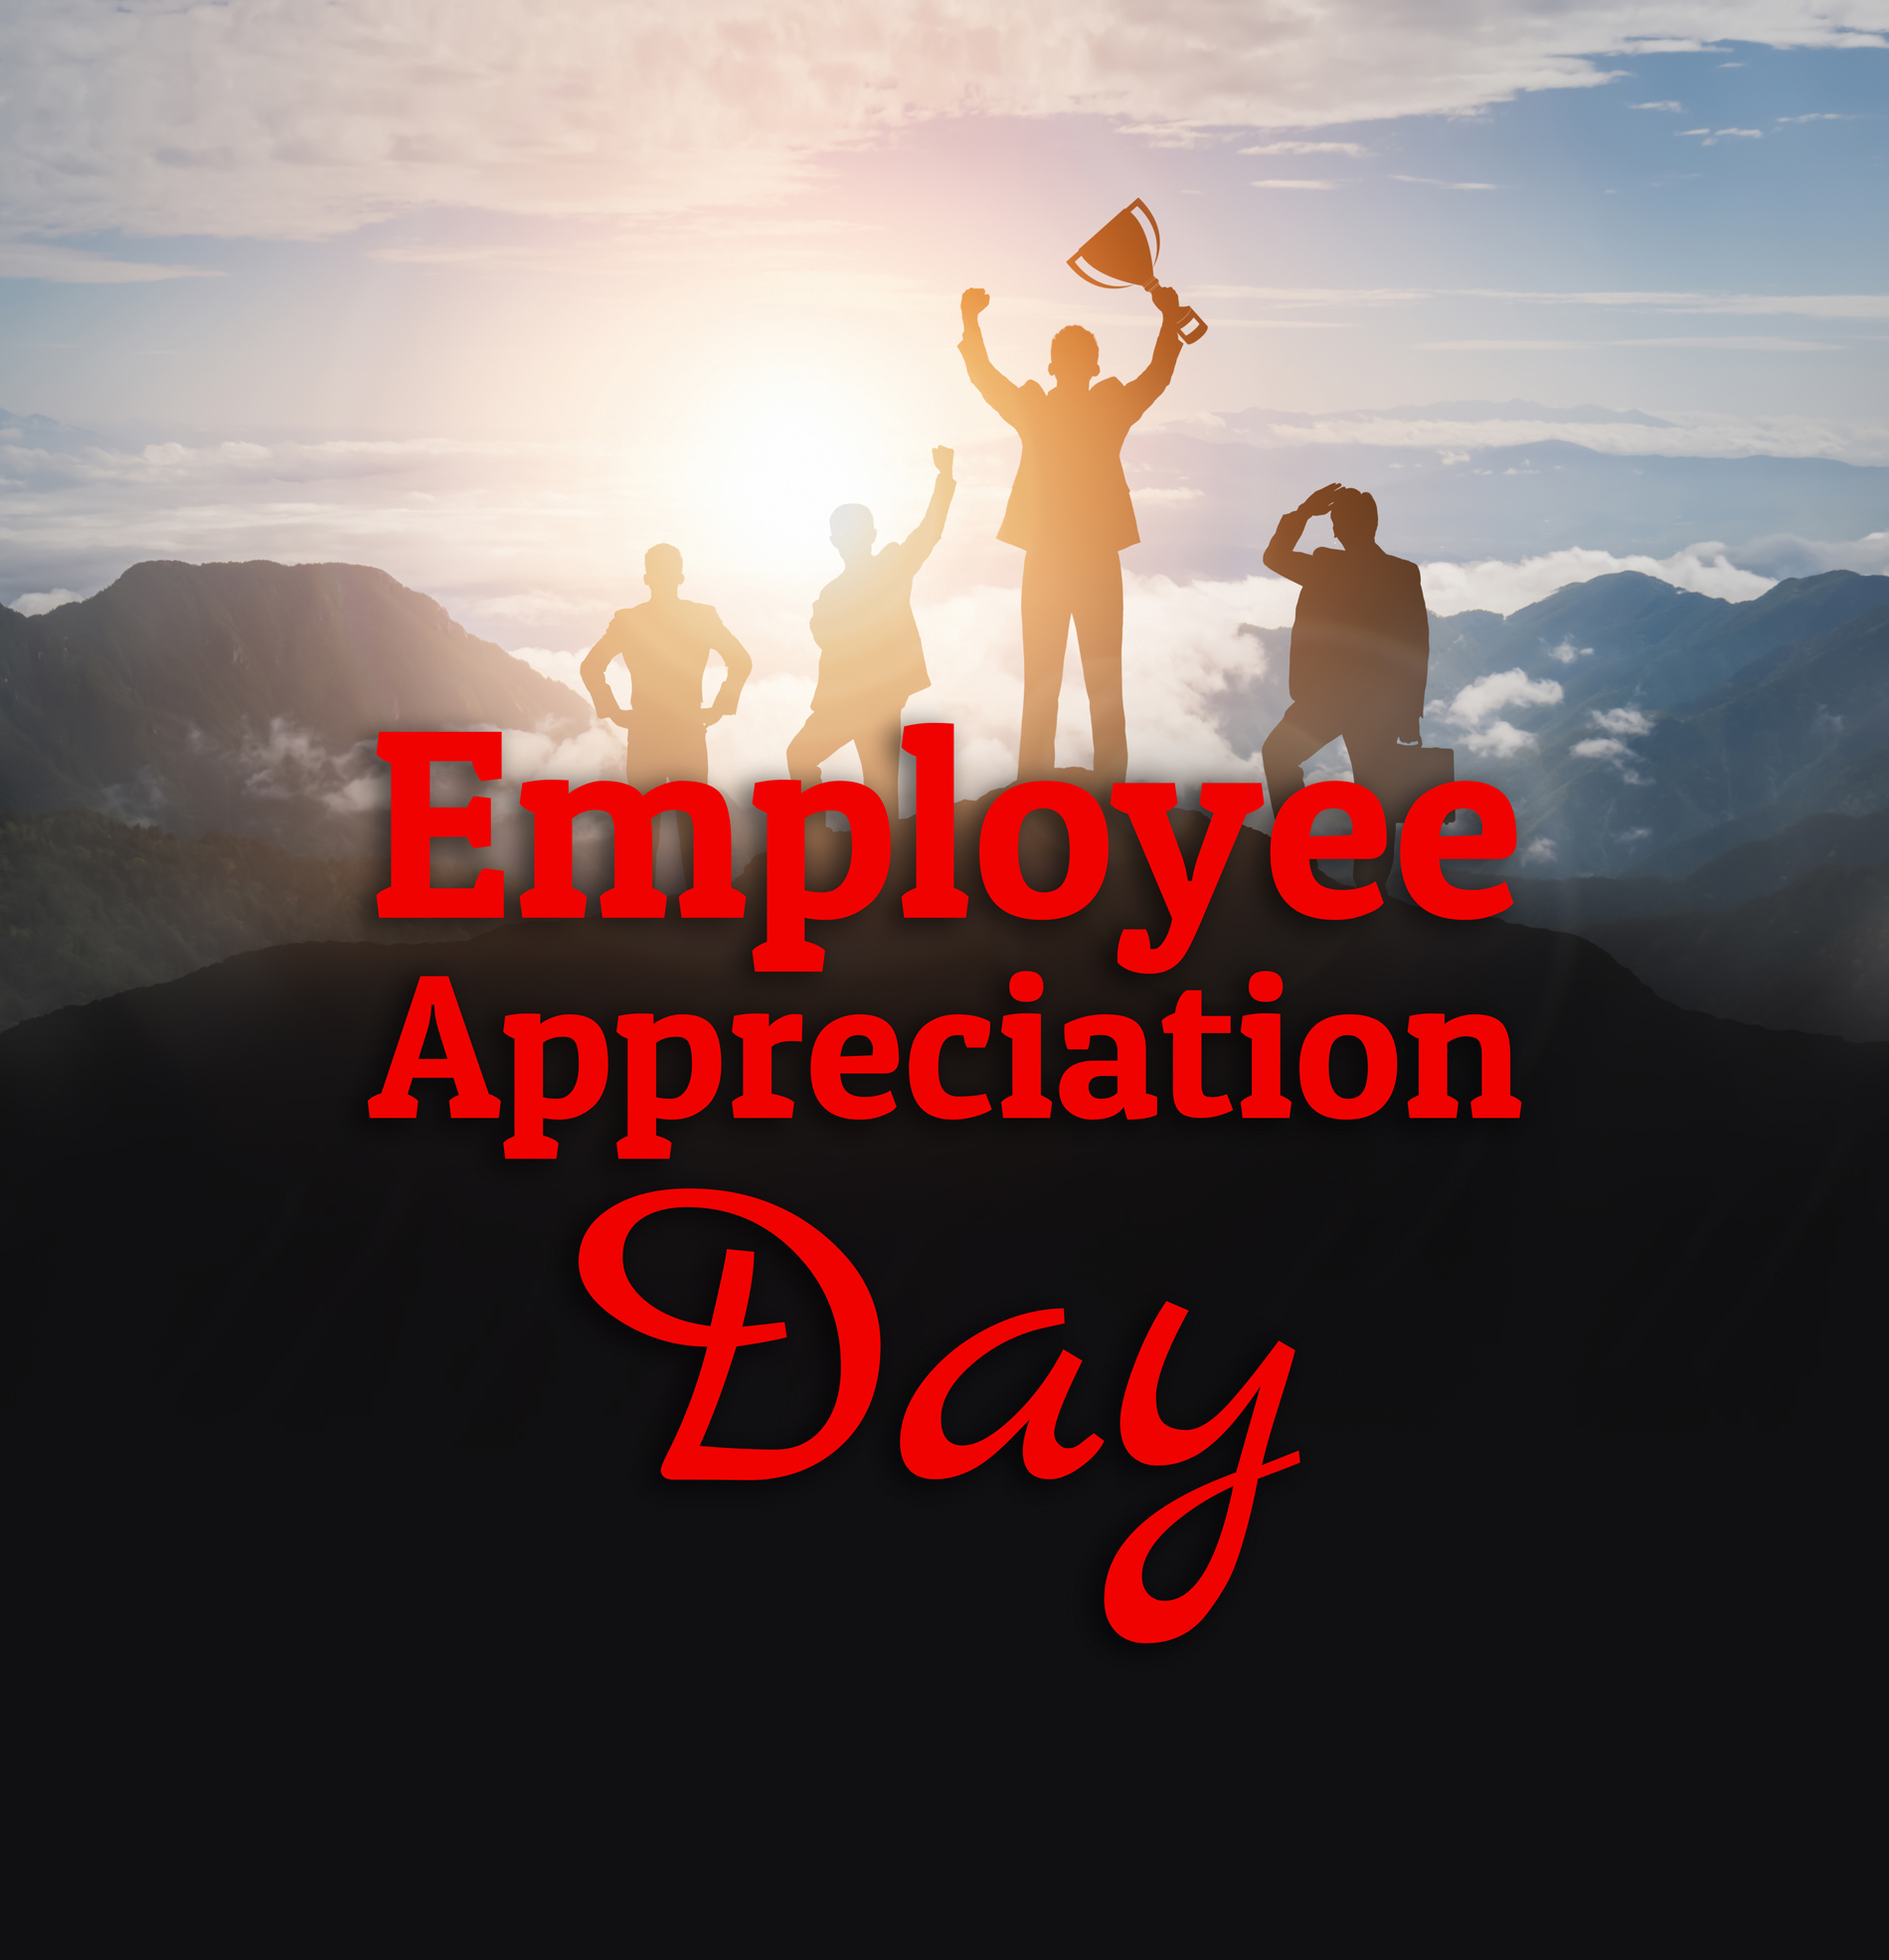 illustration of people climbing a mountain behind the label Employee Appreciation Day